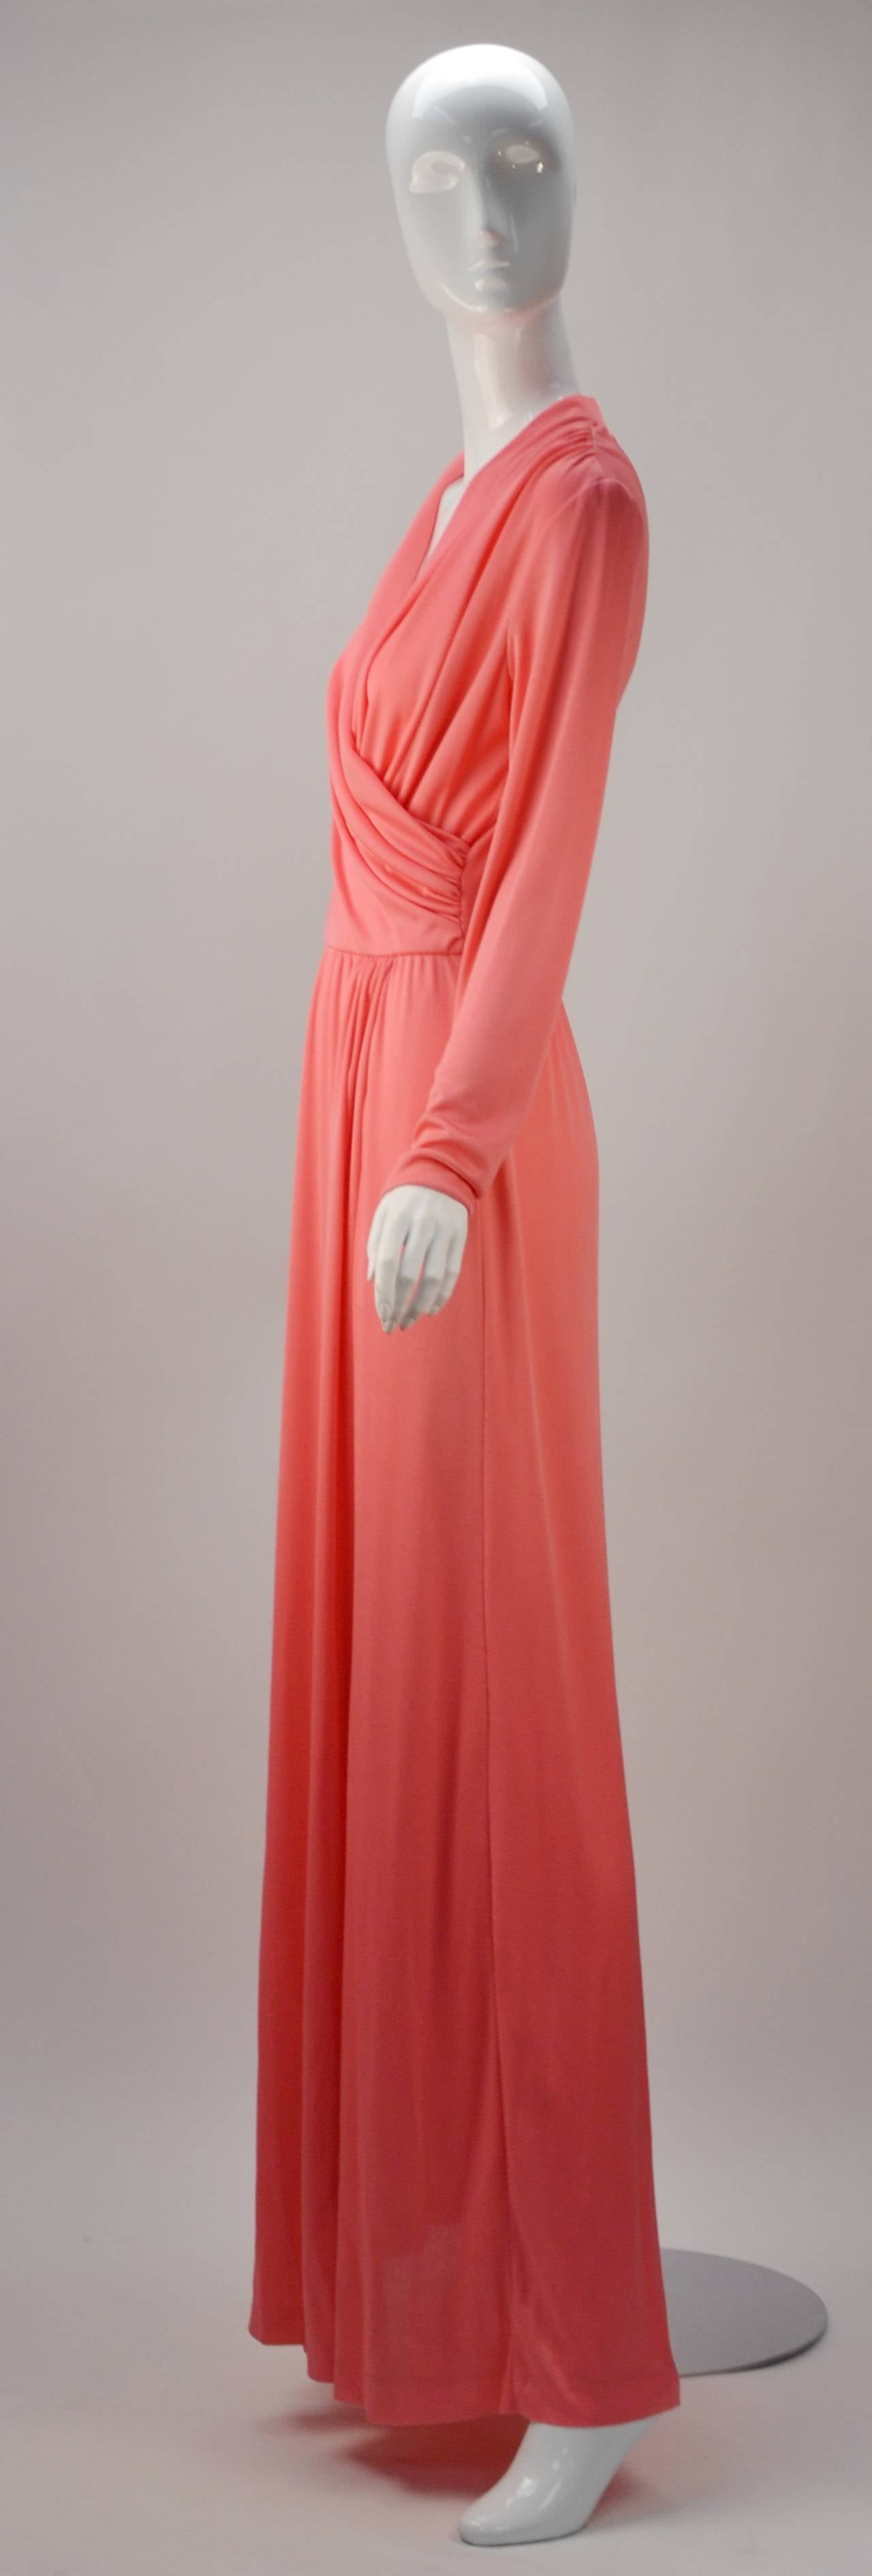 1970s Joy Stevens Coral Pink Maxi Dress In Excellent Condition For Sale In Houston, TX